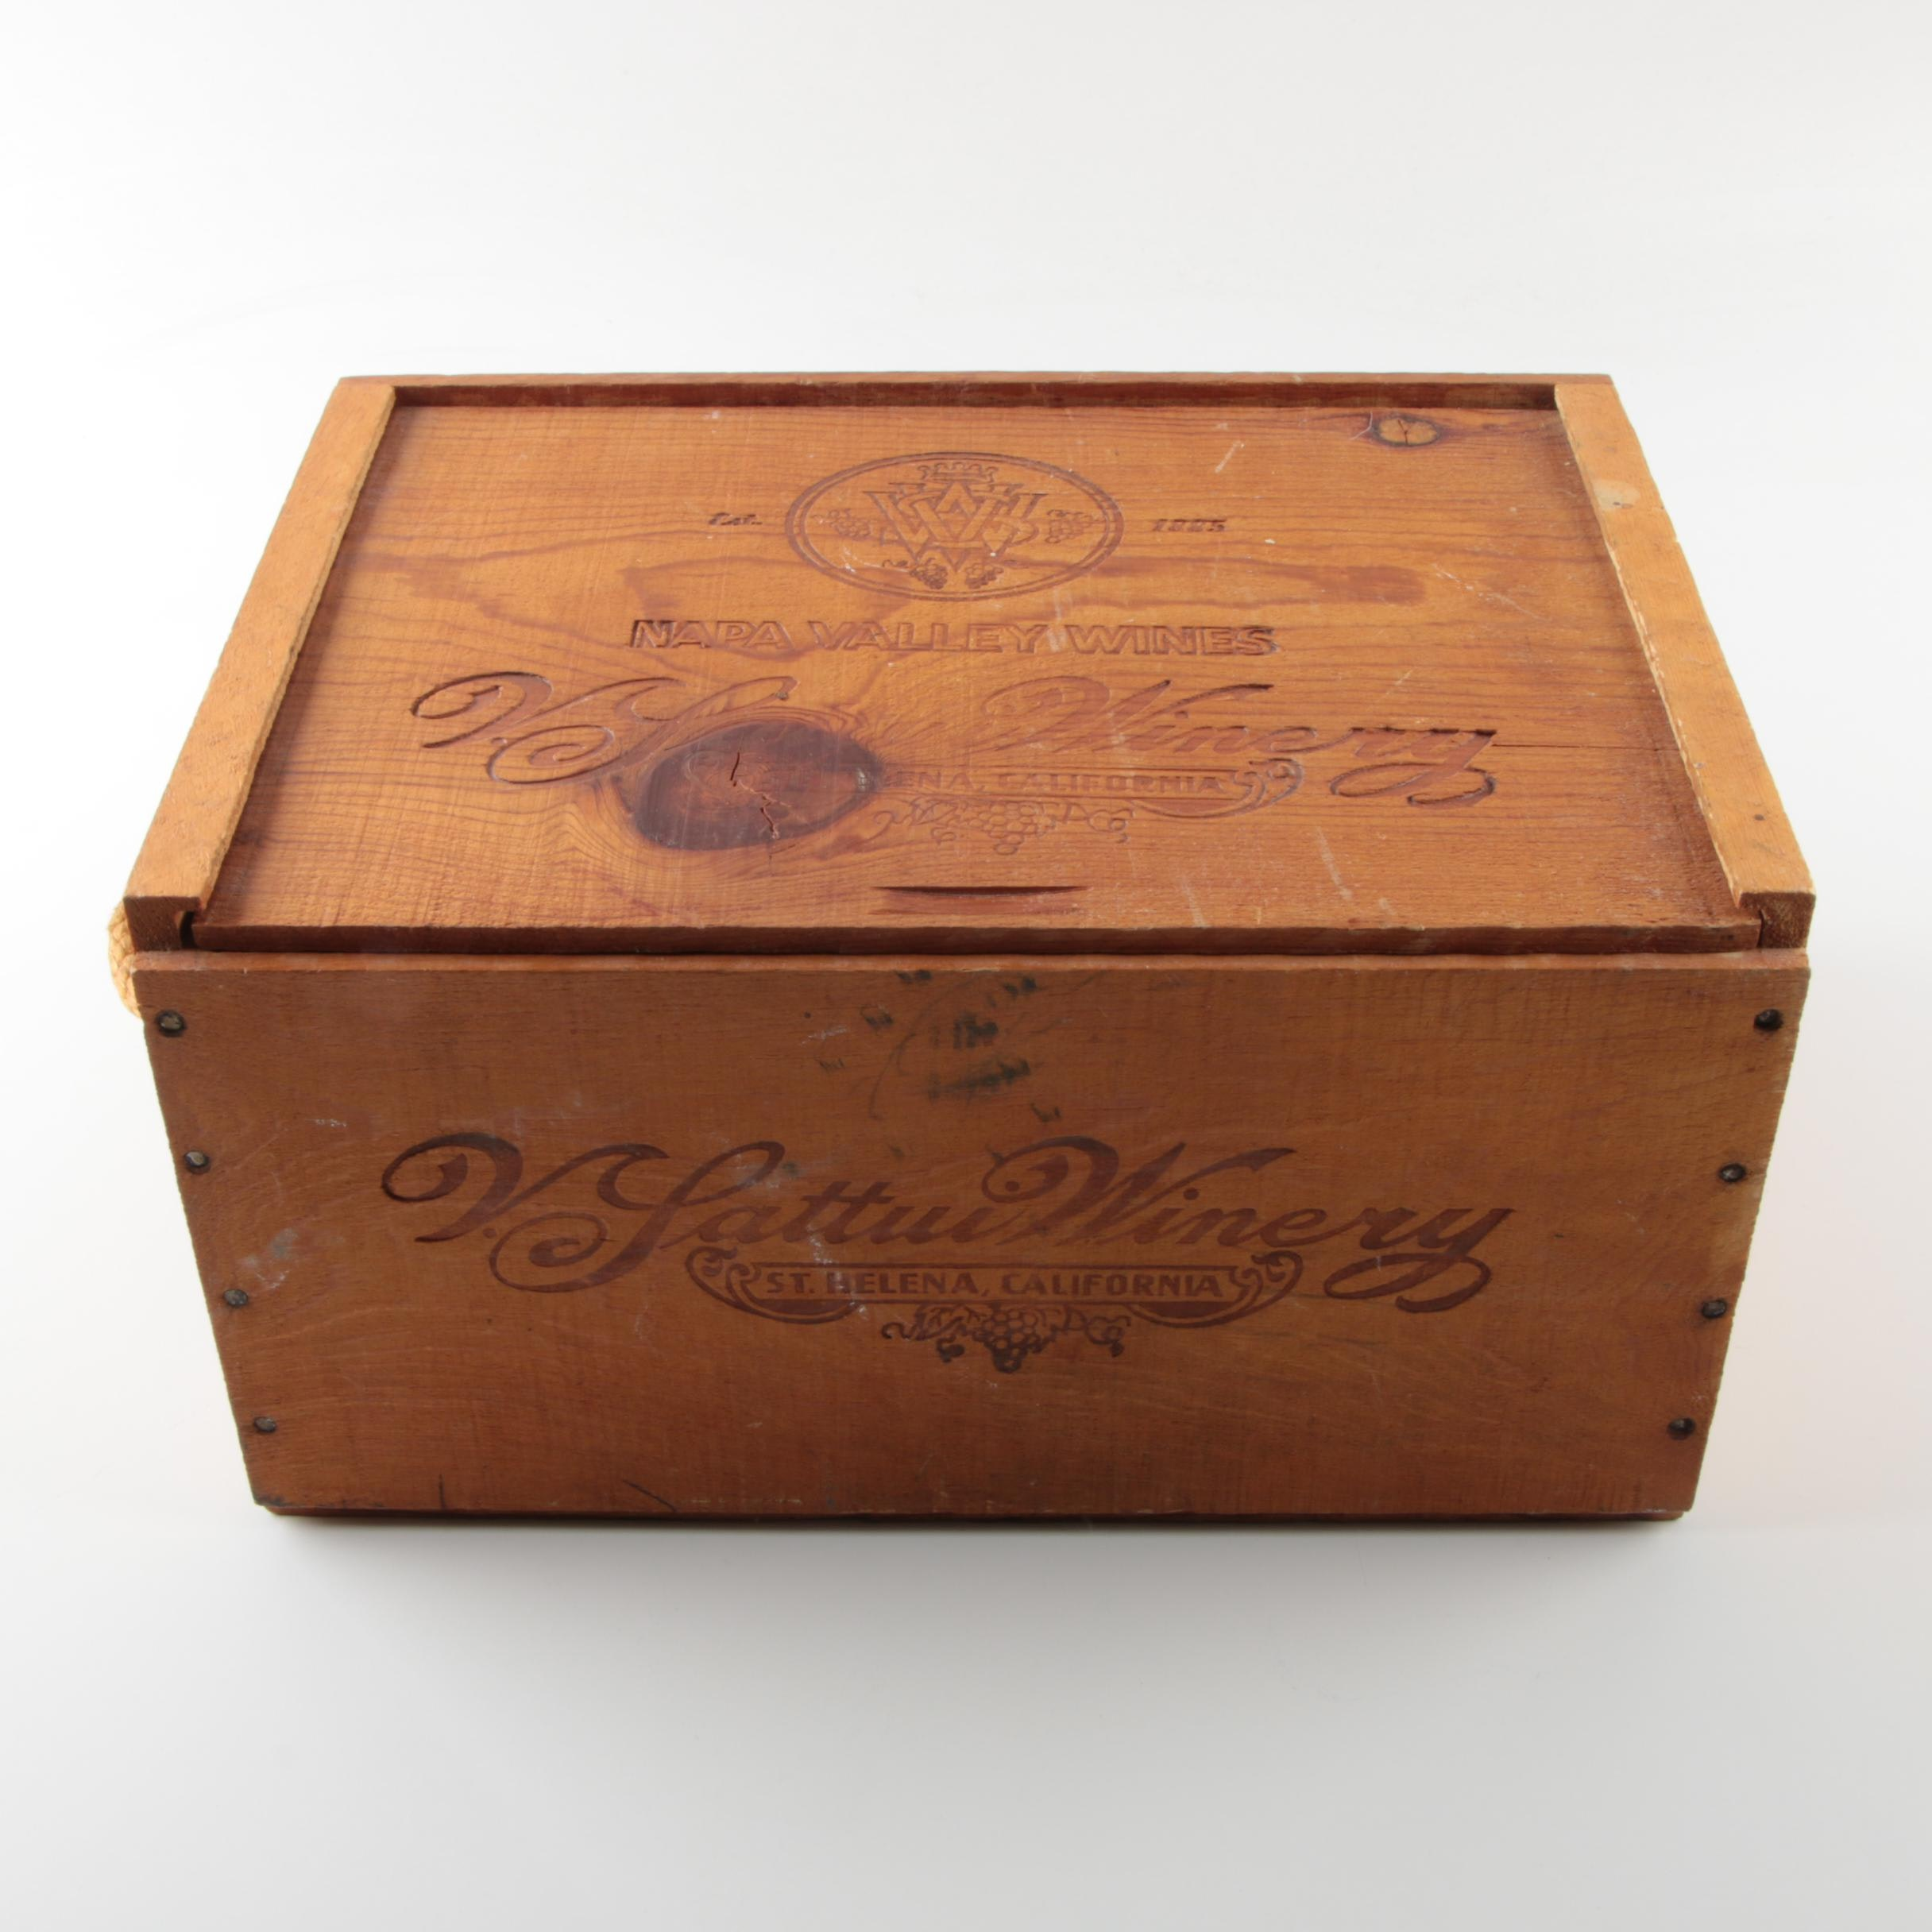 Vintage Napa Valley Winery Box